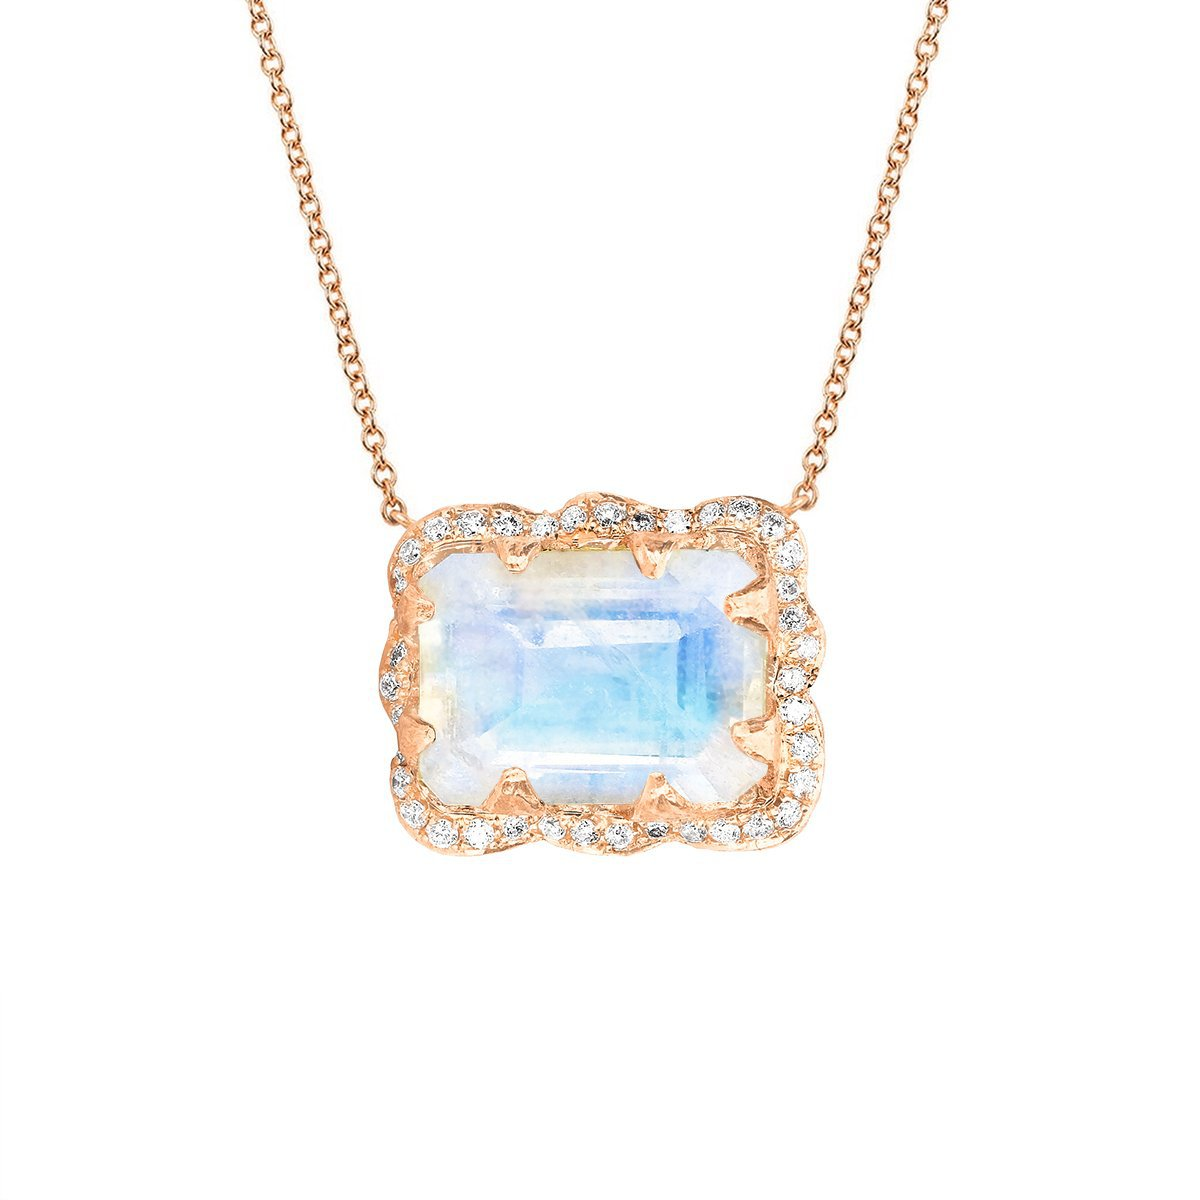 18k Queen Emerald Cut Moonstone Necklace with Pavé Diamond Halo